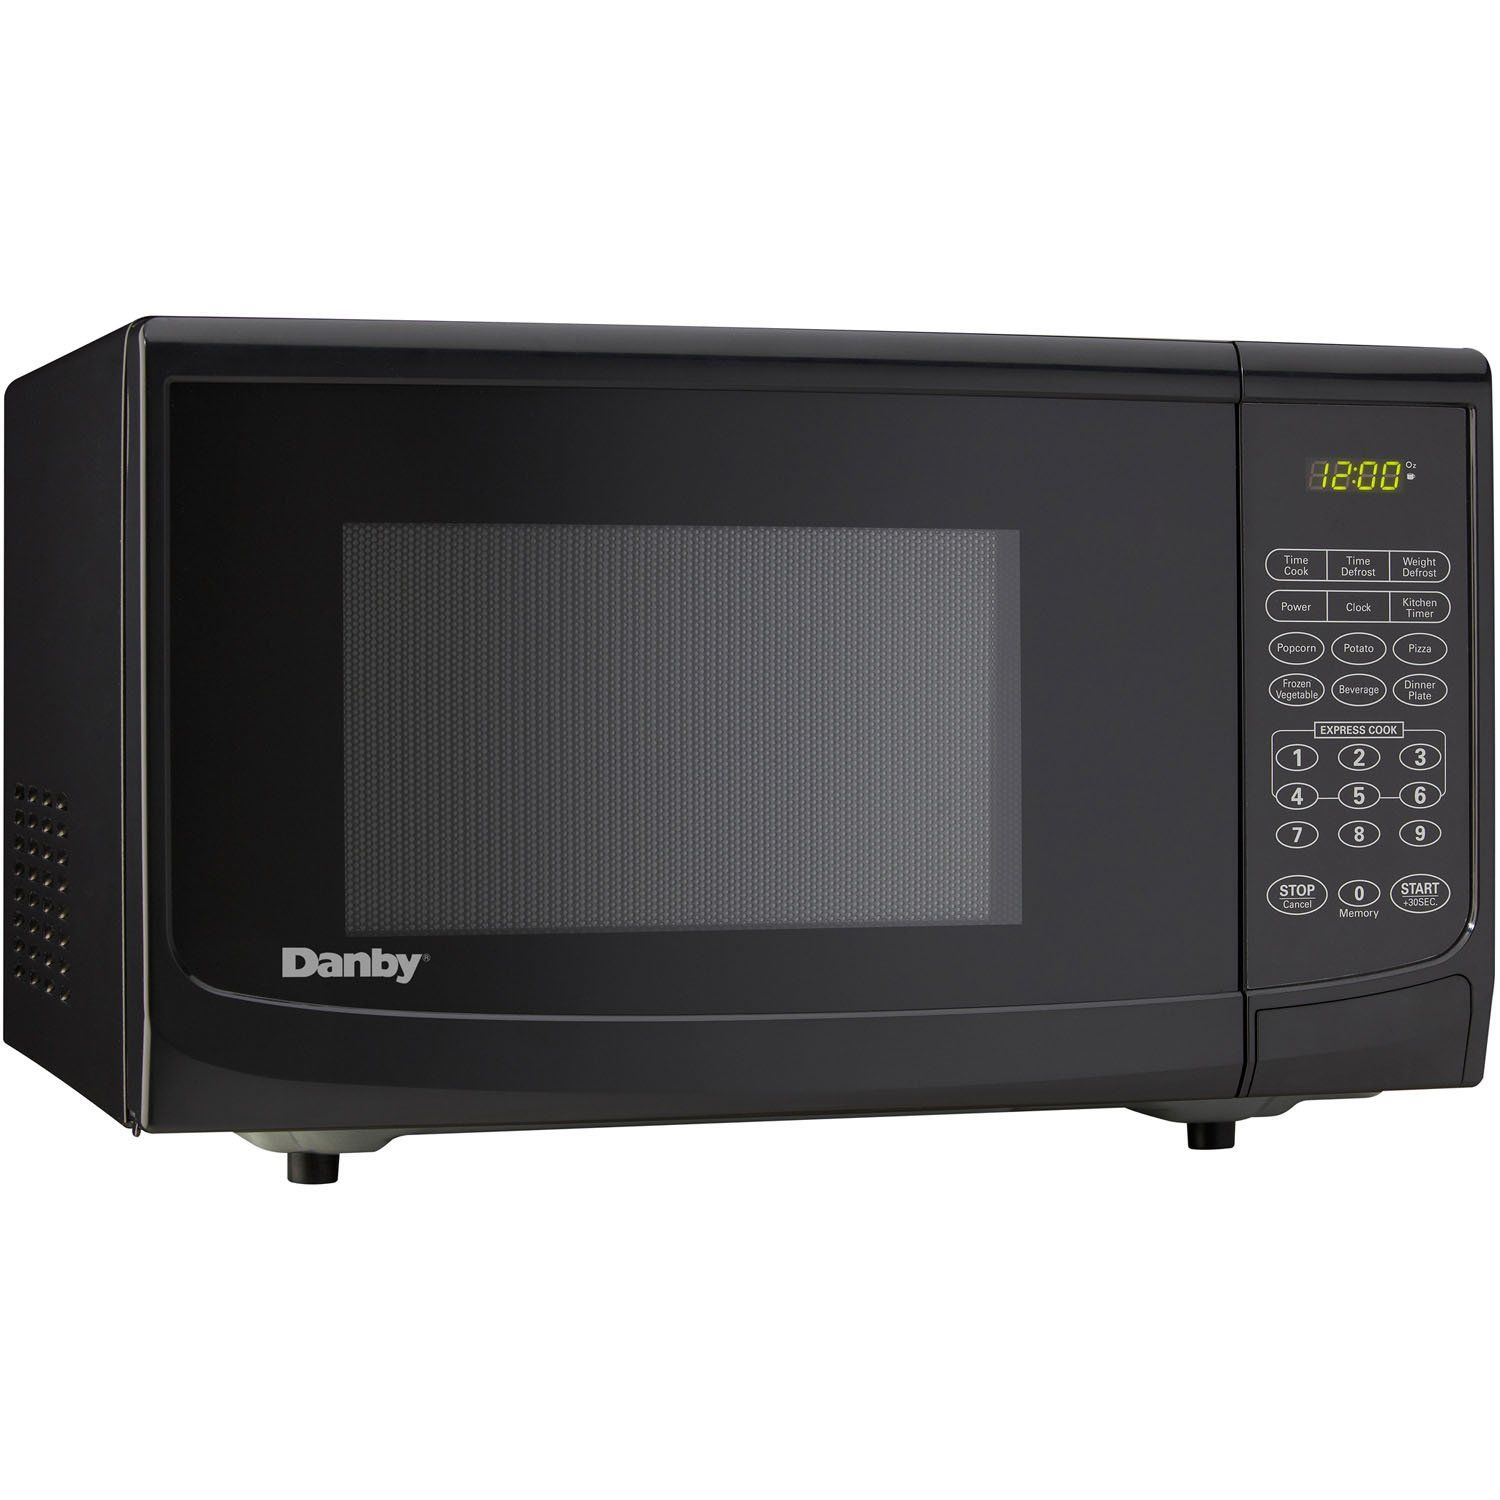 Danby Dmw7700bldb 0 7 Cu Ft Microwave Oven Black This Is An